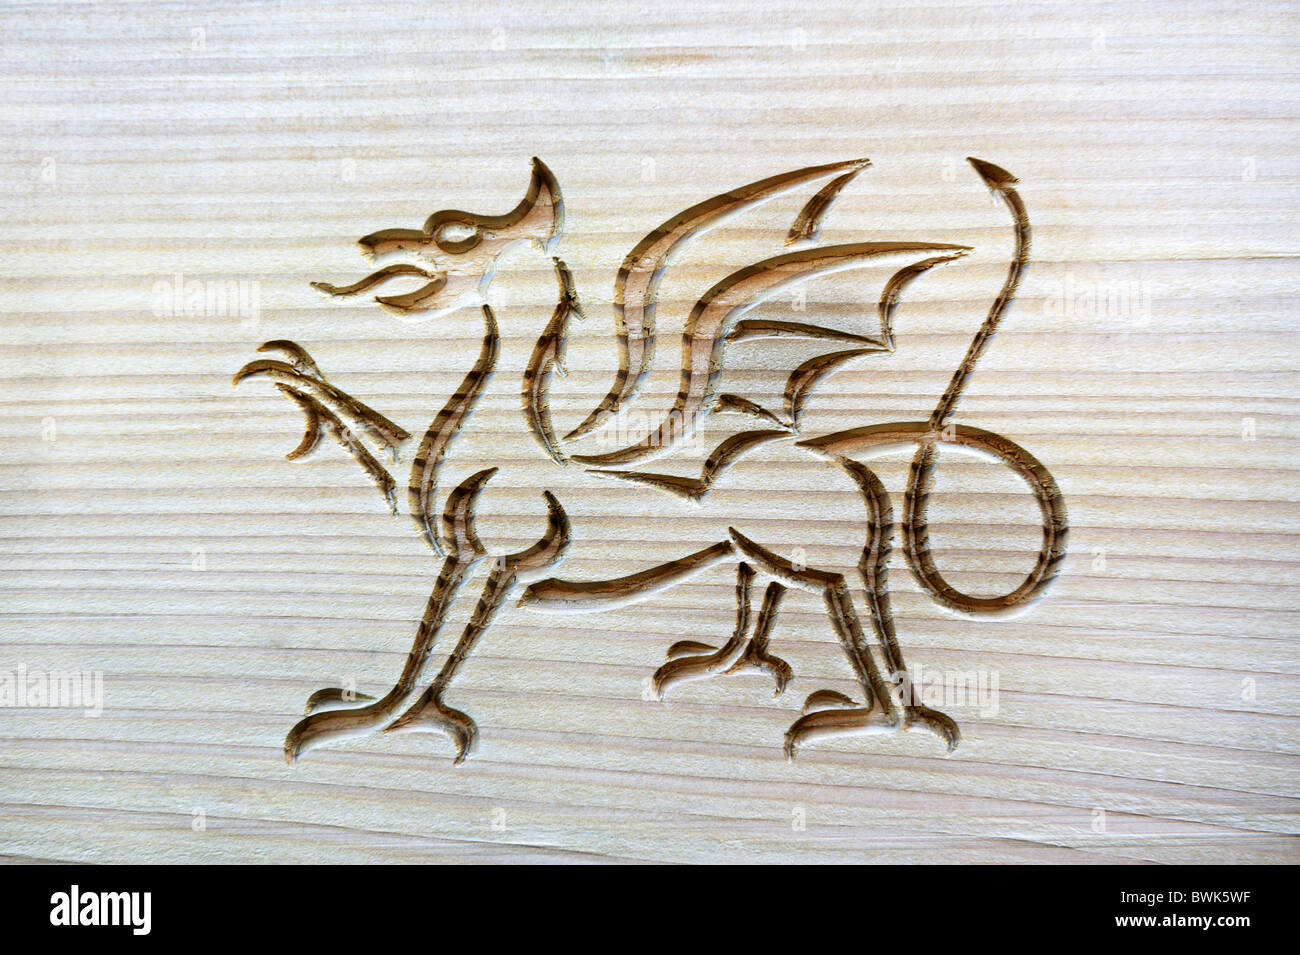 Welsh dragon, national symbol of Wales, carved into grained wood panel - Stock Image